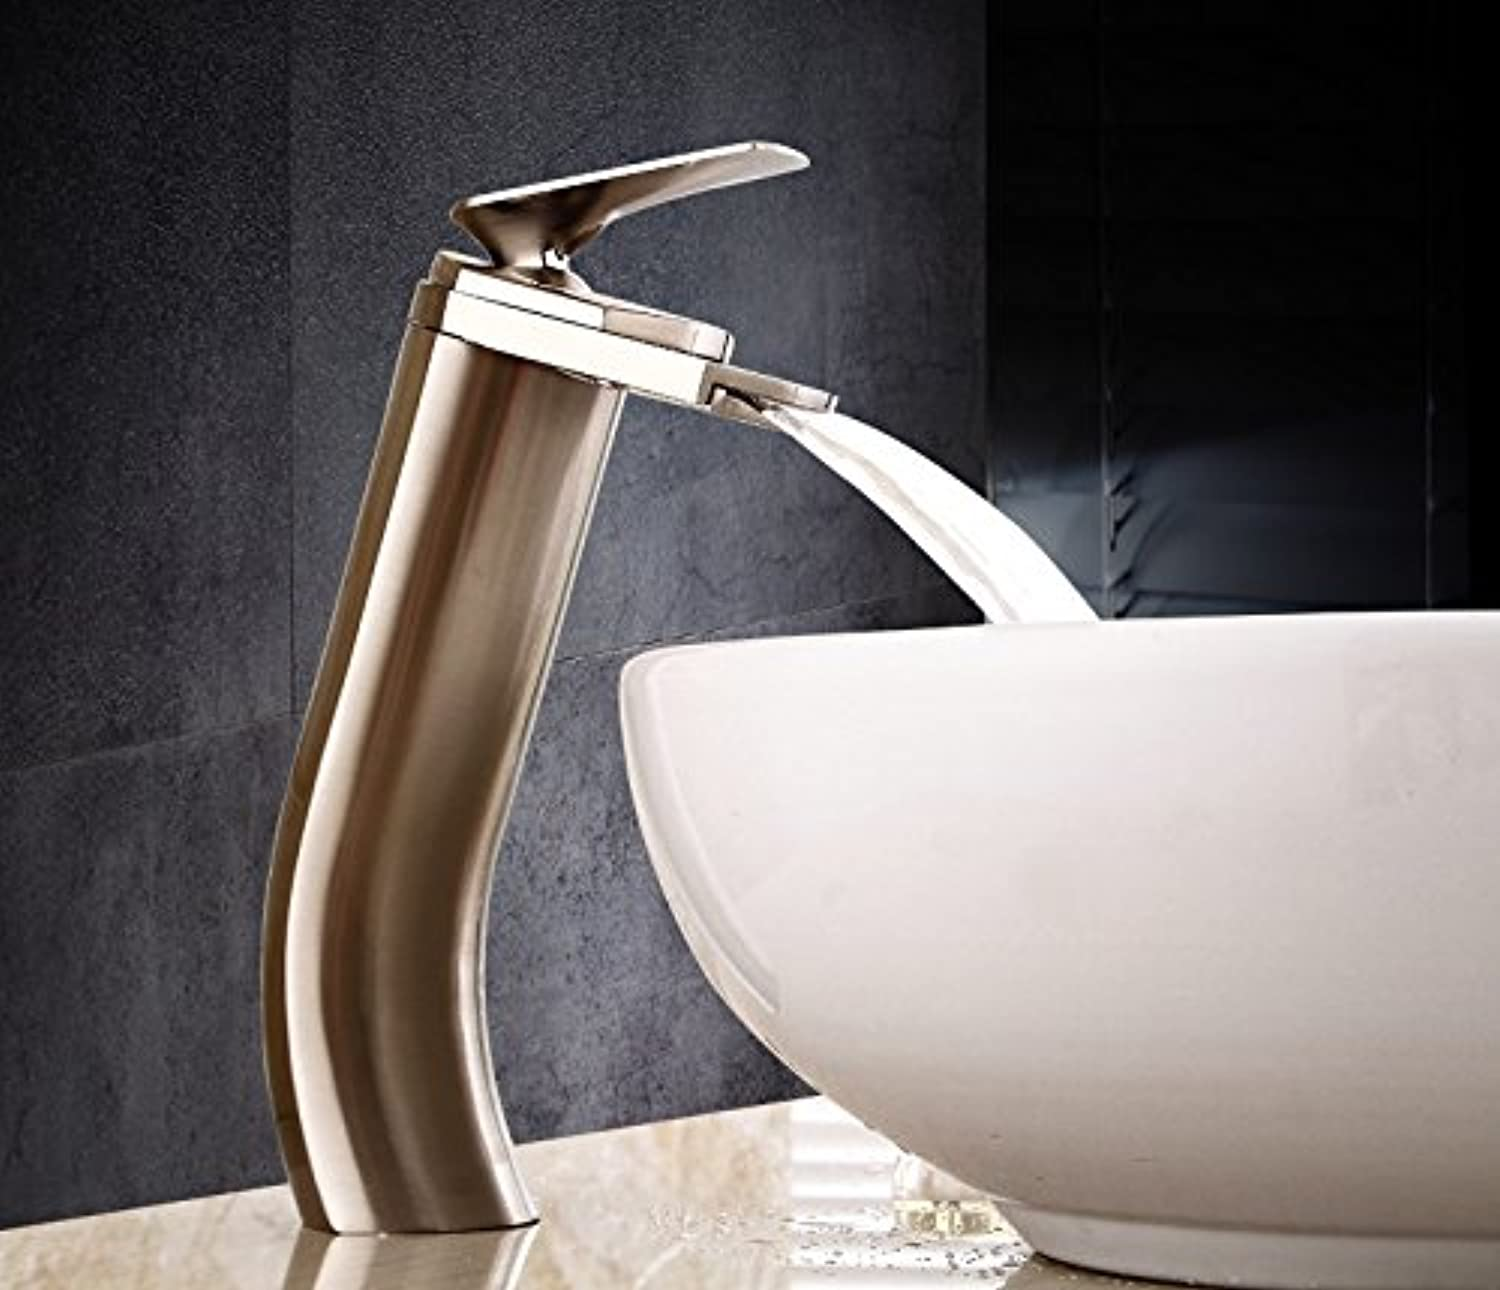 Bijjaladeva Antique Bathroom Sink Vessel Faucet Basin Mixer Tap The copper hot and cold basin faucet single hole waterfall brushed